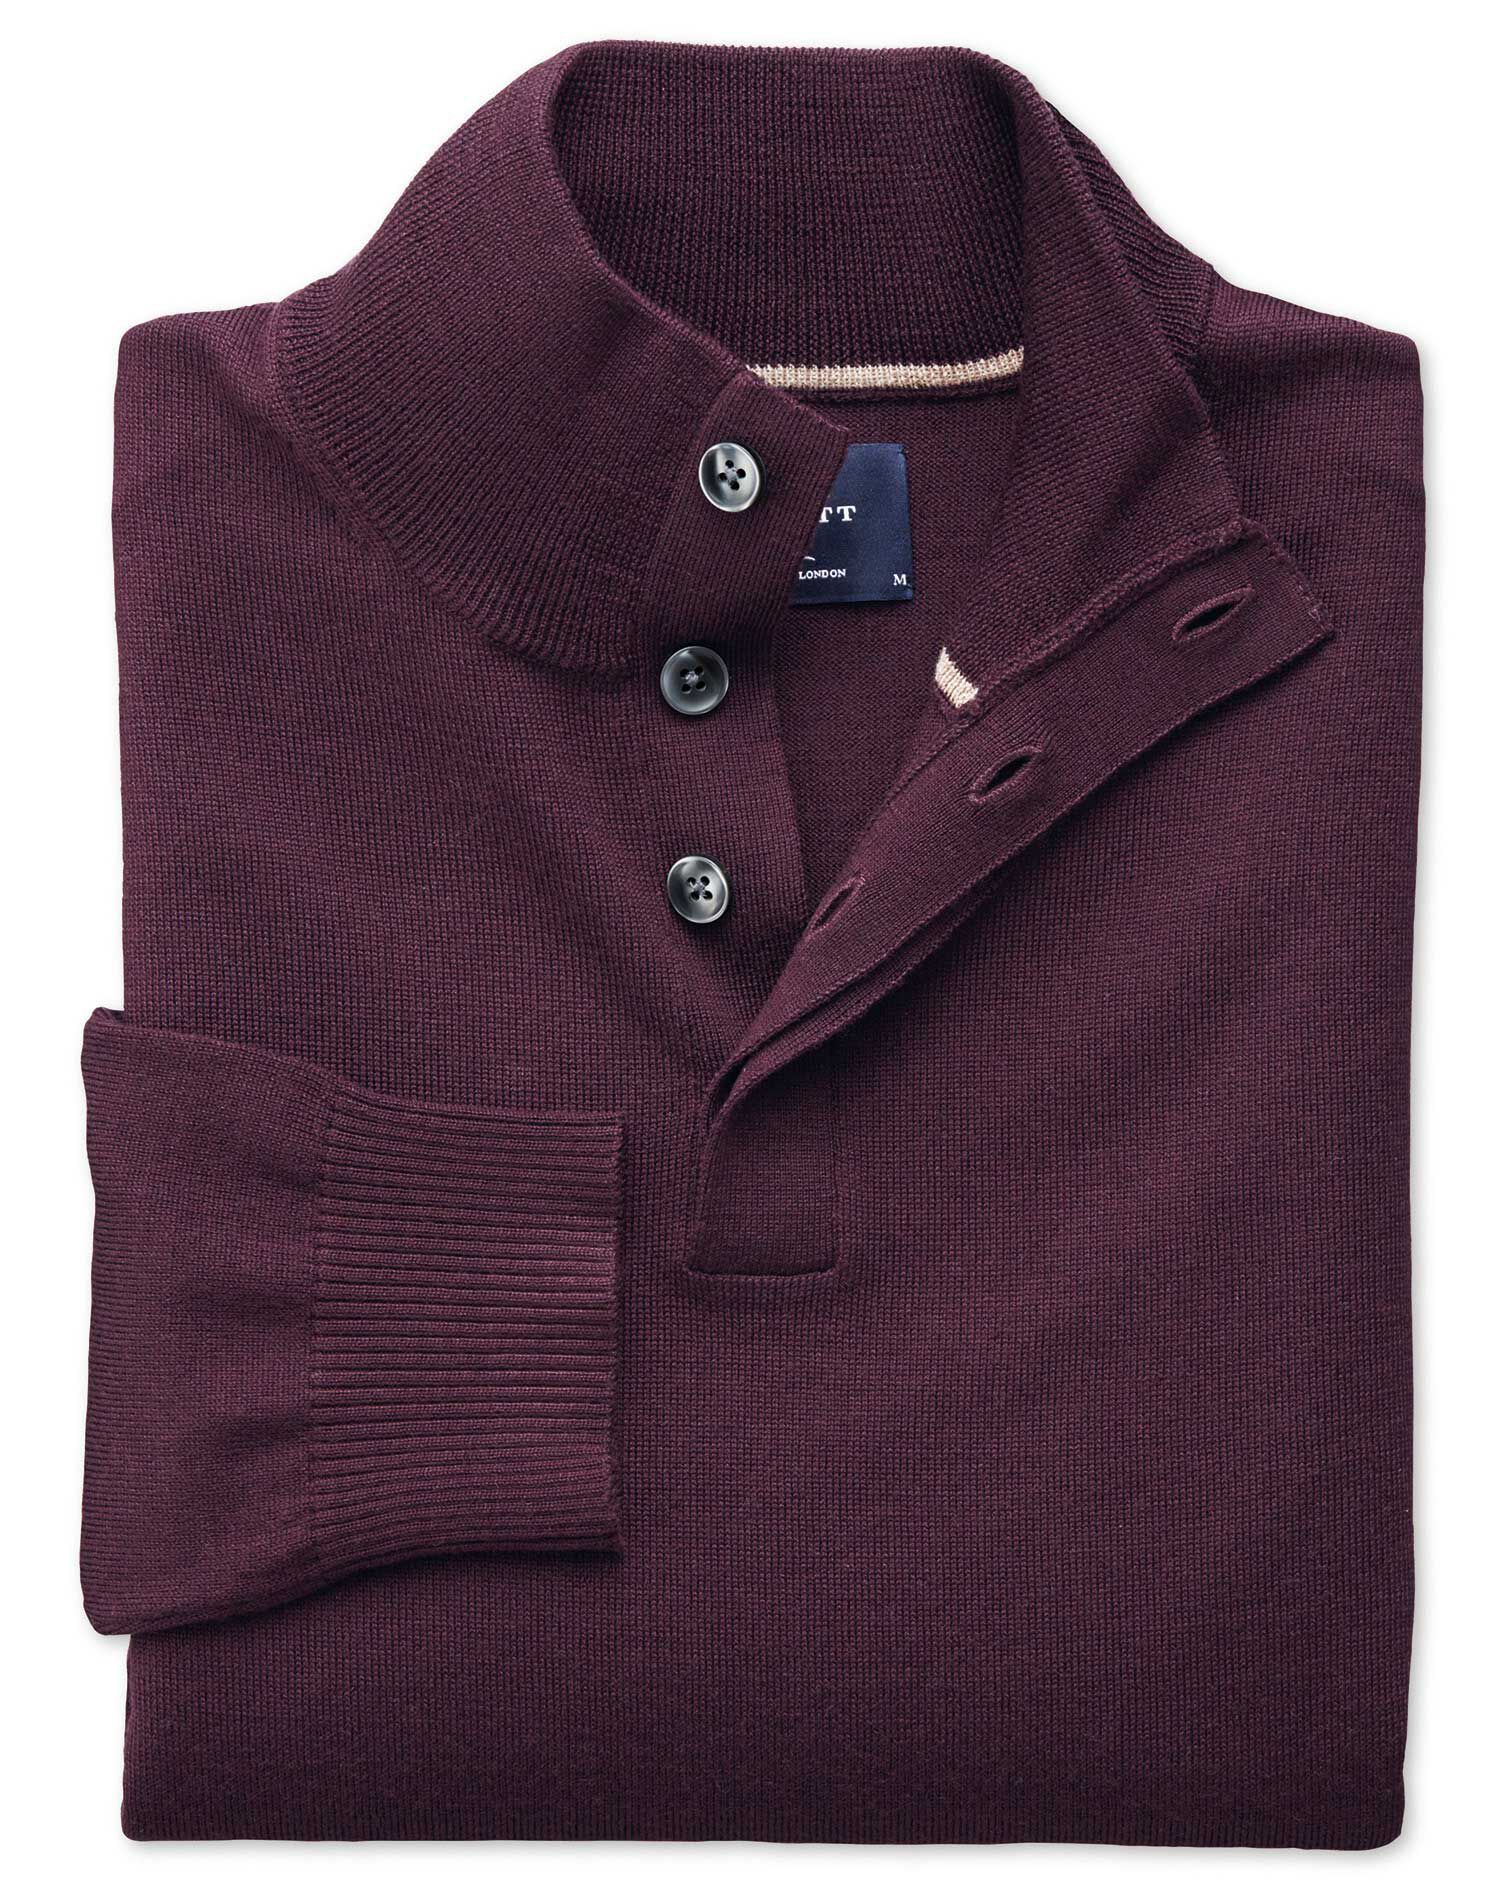 Wine Merino Wool Button Neck Jumper Size XXXL by Charles Tyrwhitt